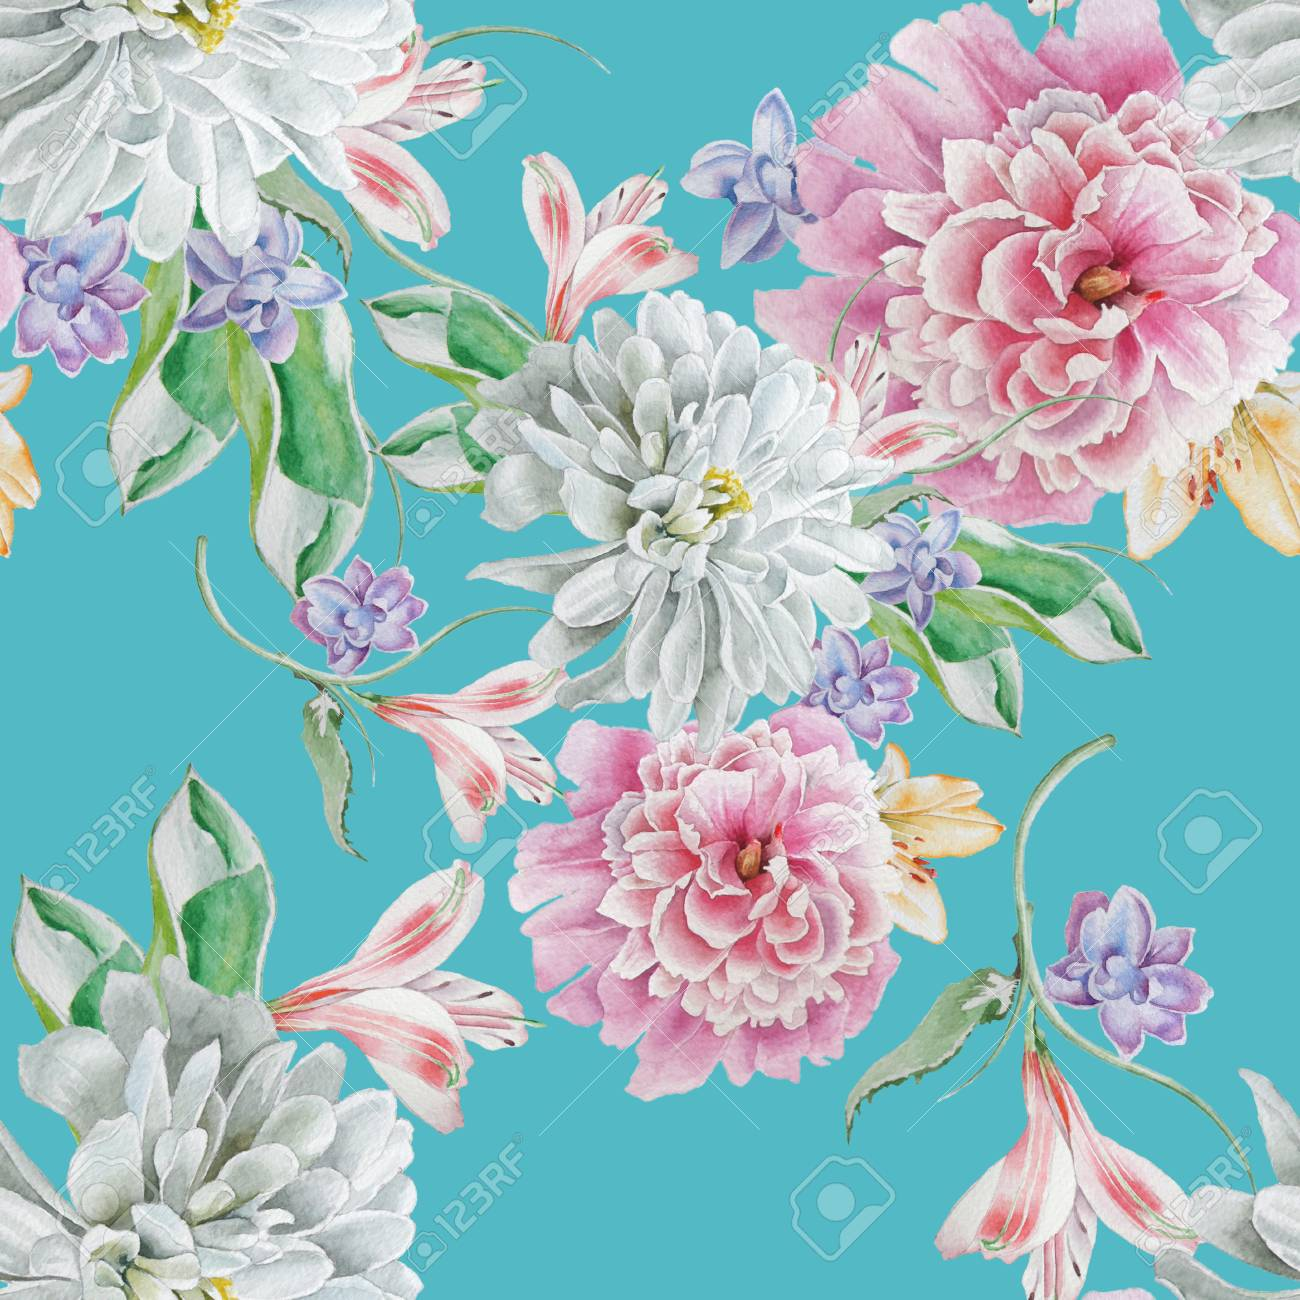 Bright seamless pattern with flowers. Watercolor illustration. Chrysanthemum. Peony. Hand drawn. - 92347953